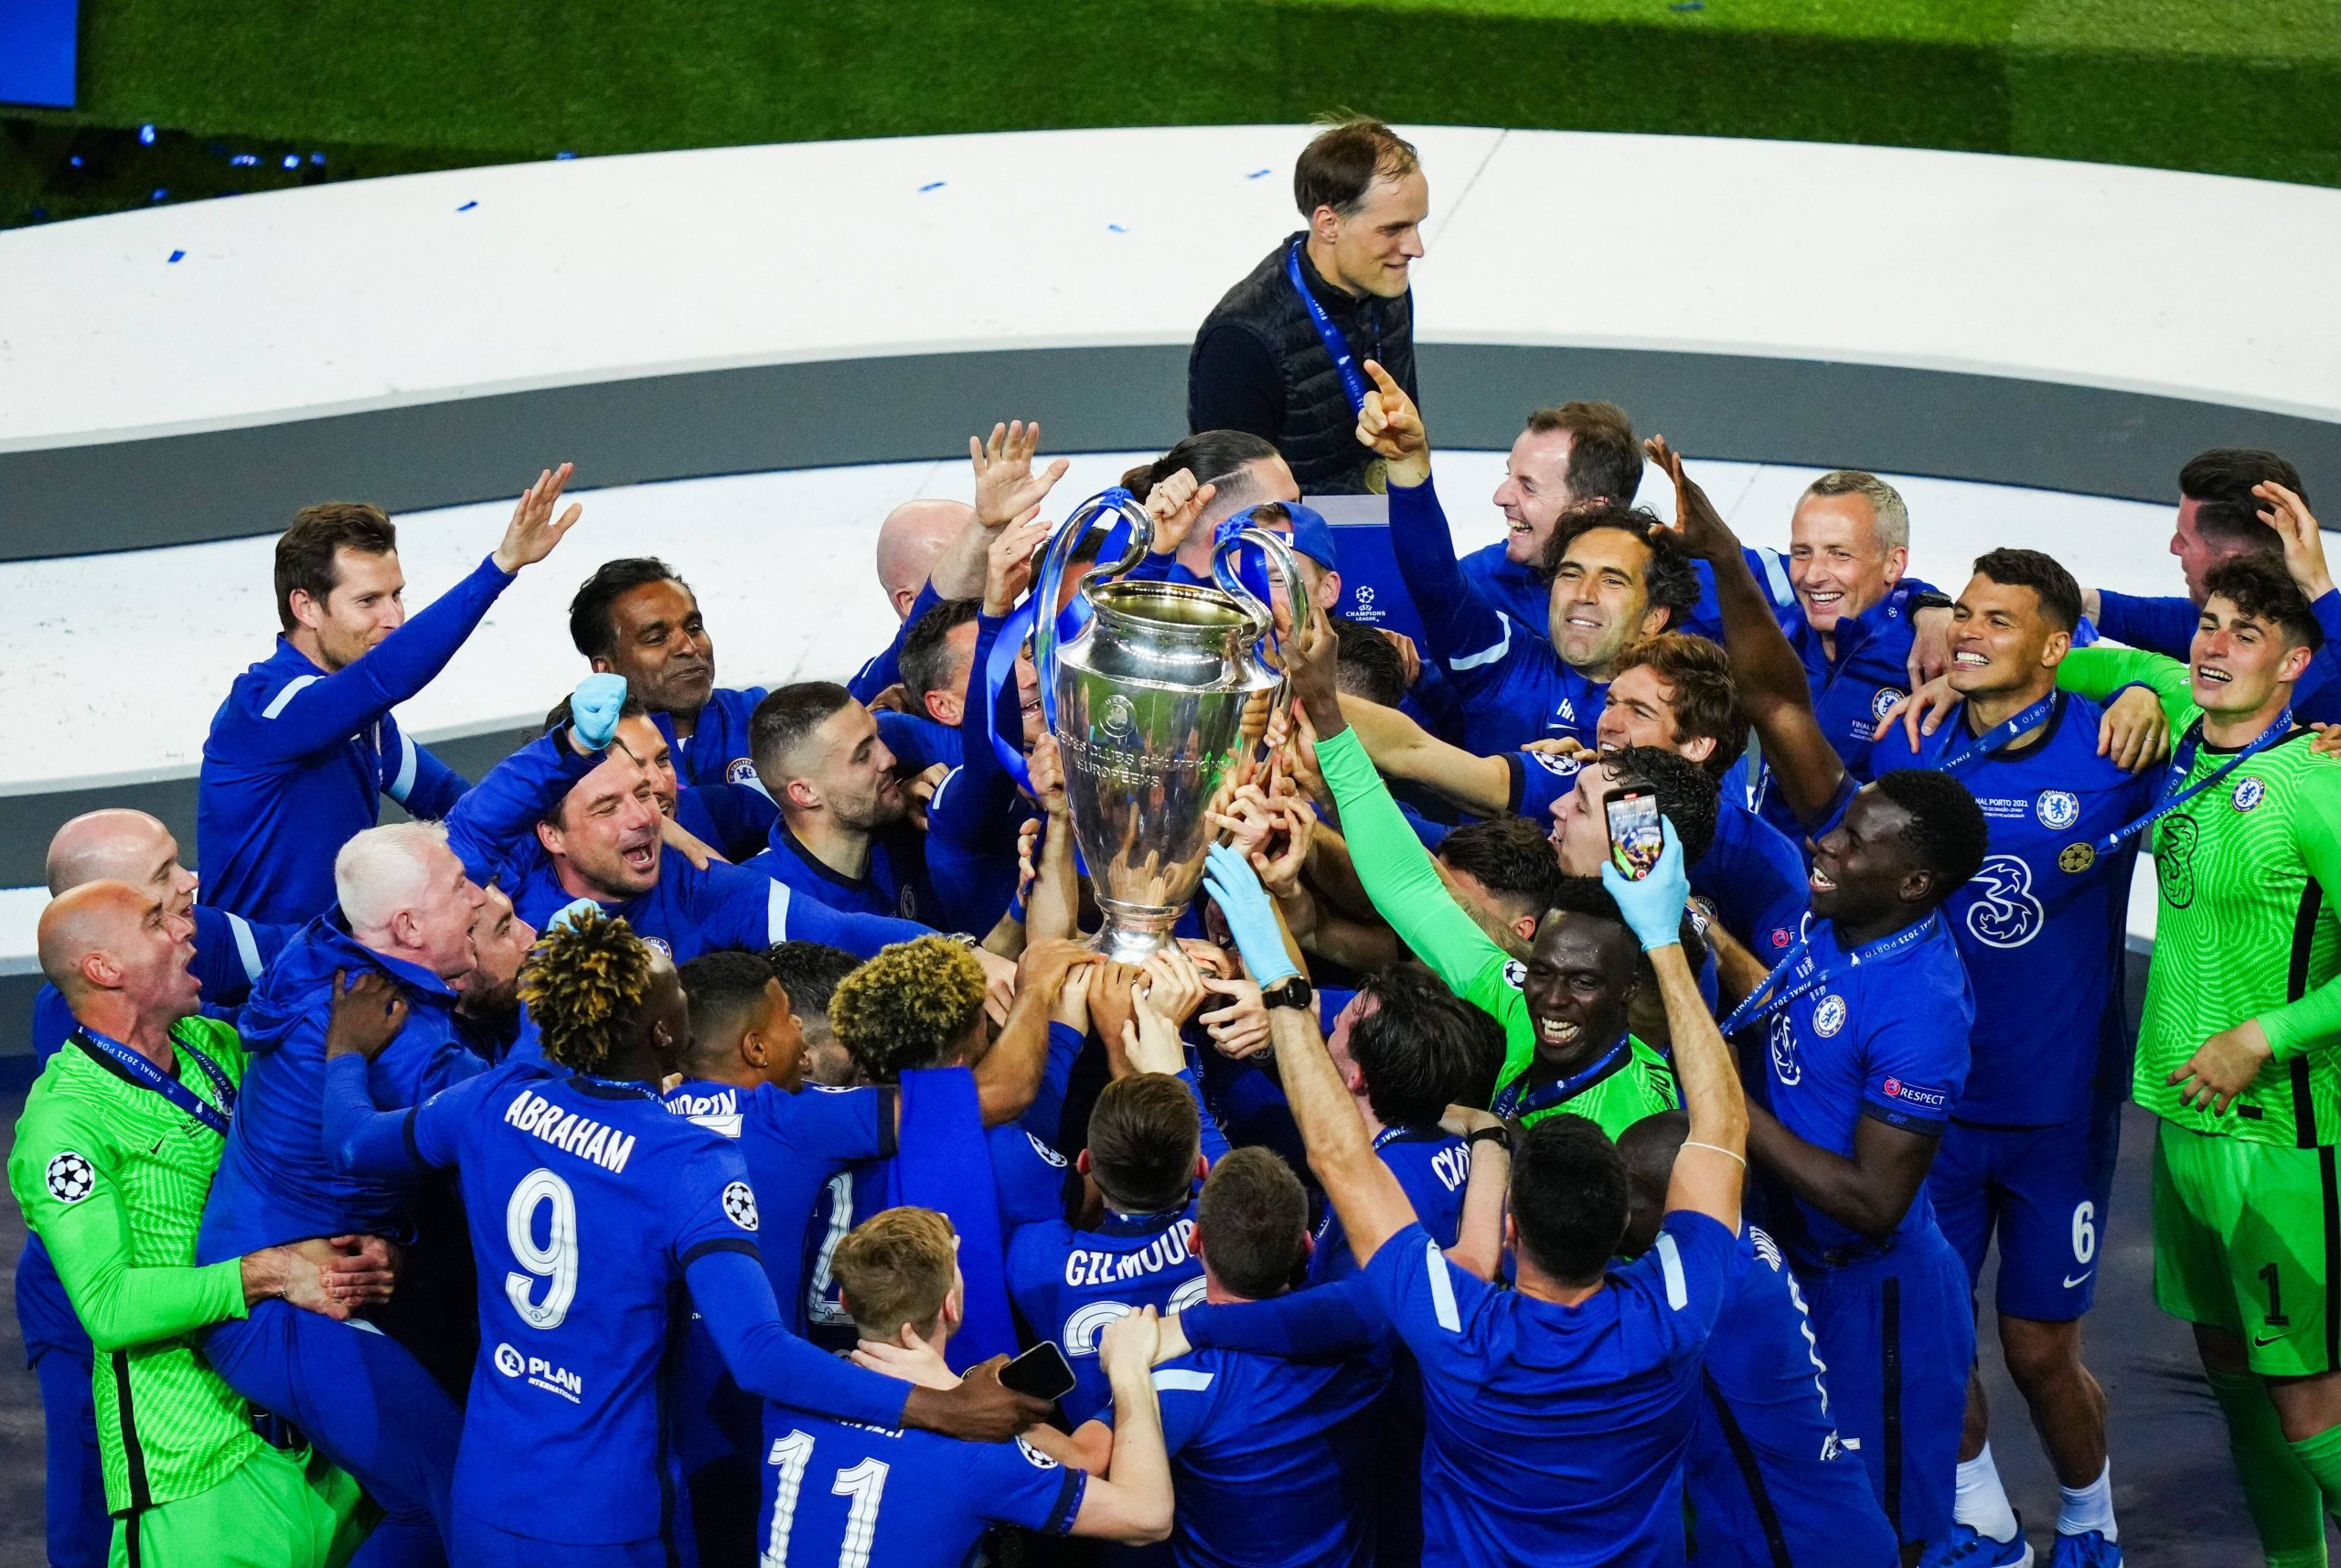 Revealed The Prize Money Won By Chelsea After Ucl Win Vs Man City